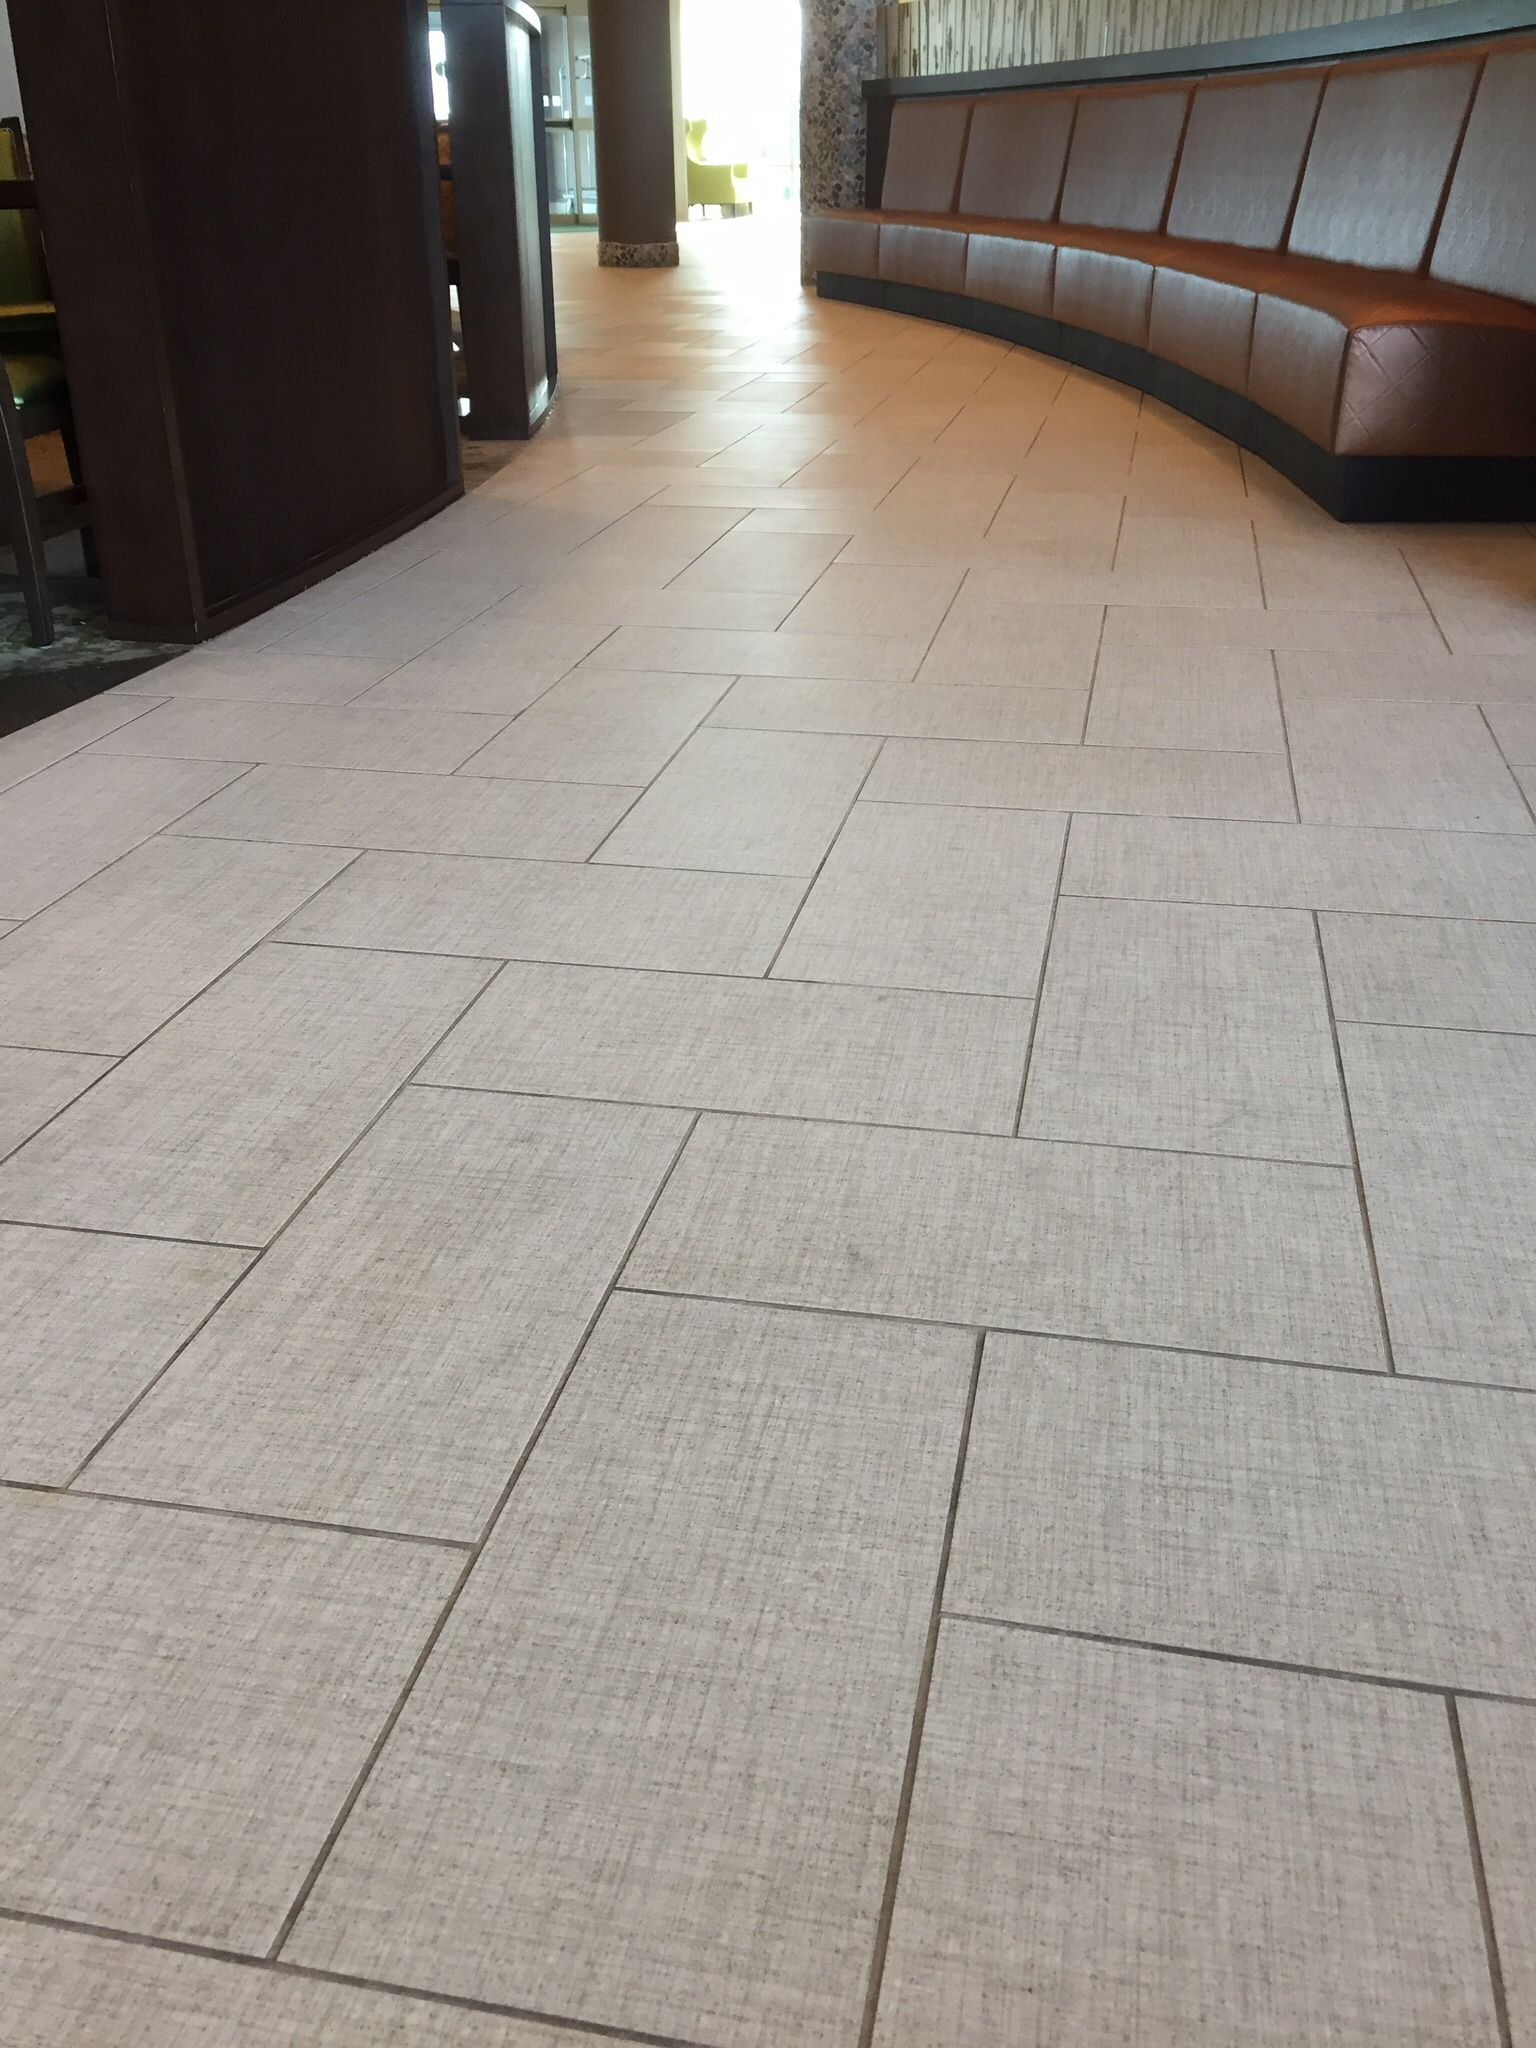 Daltile exhibition series ex12 ecru 12x24 installed in for 12x24 floor tile layout